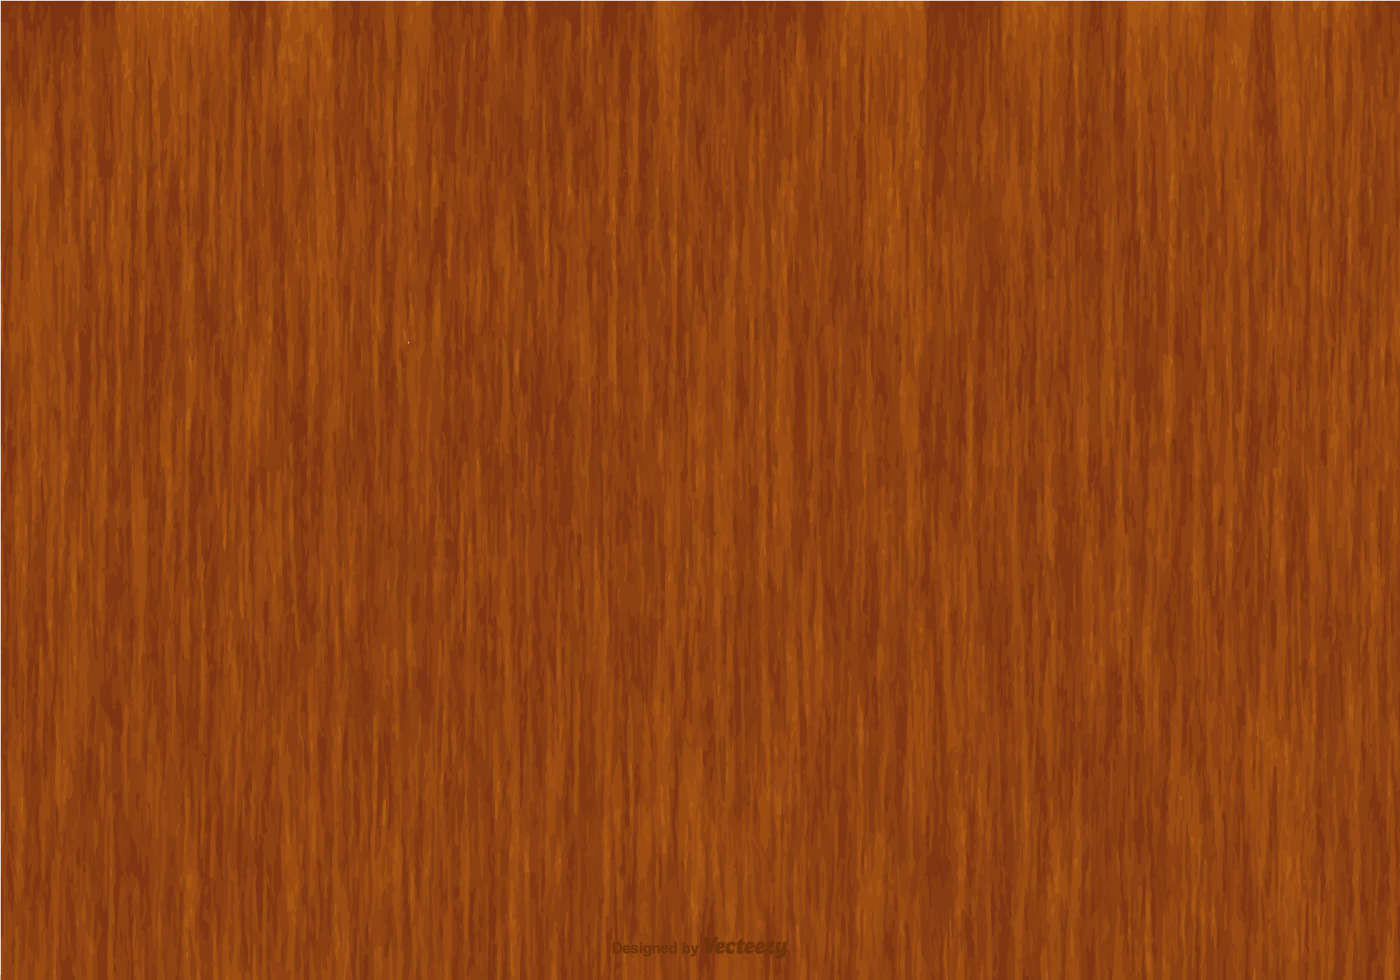 Wood Vector Background Texture Download Free Vector Art Stock Graphics Amp Images